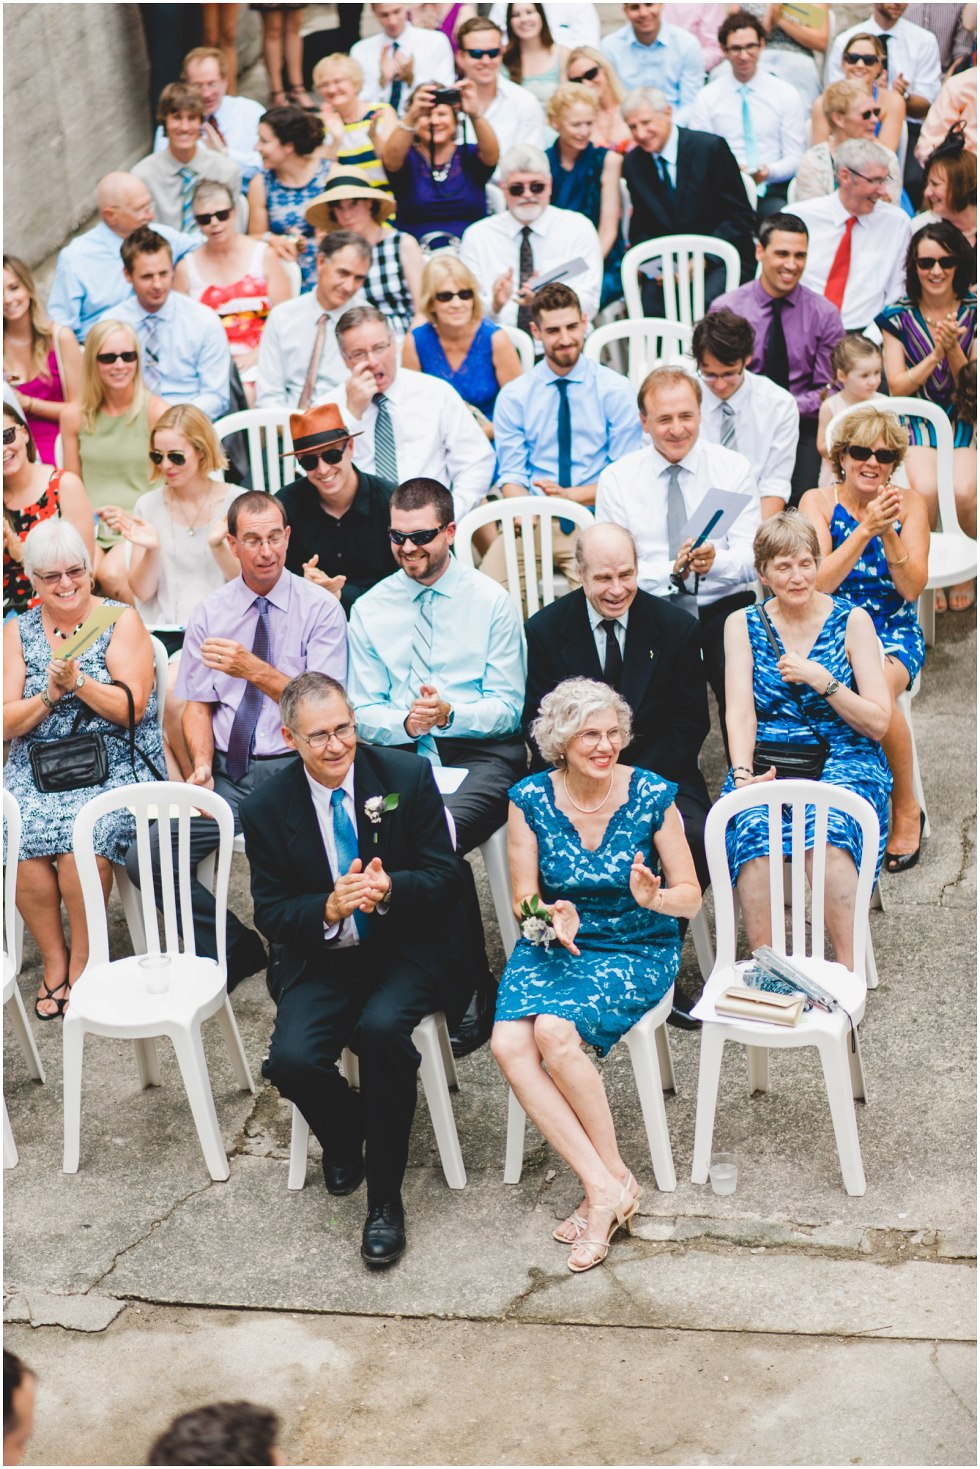 Guests smiling and clapping during the Goldie Mill Ruins wedding ceremony